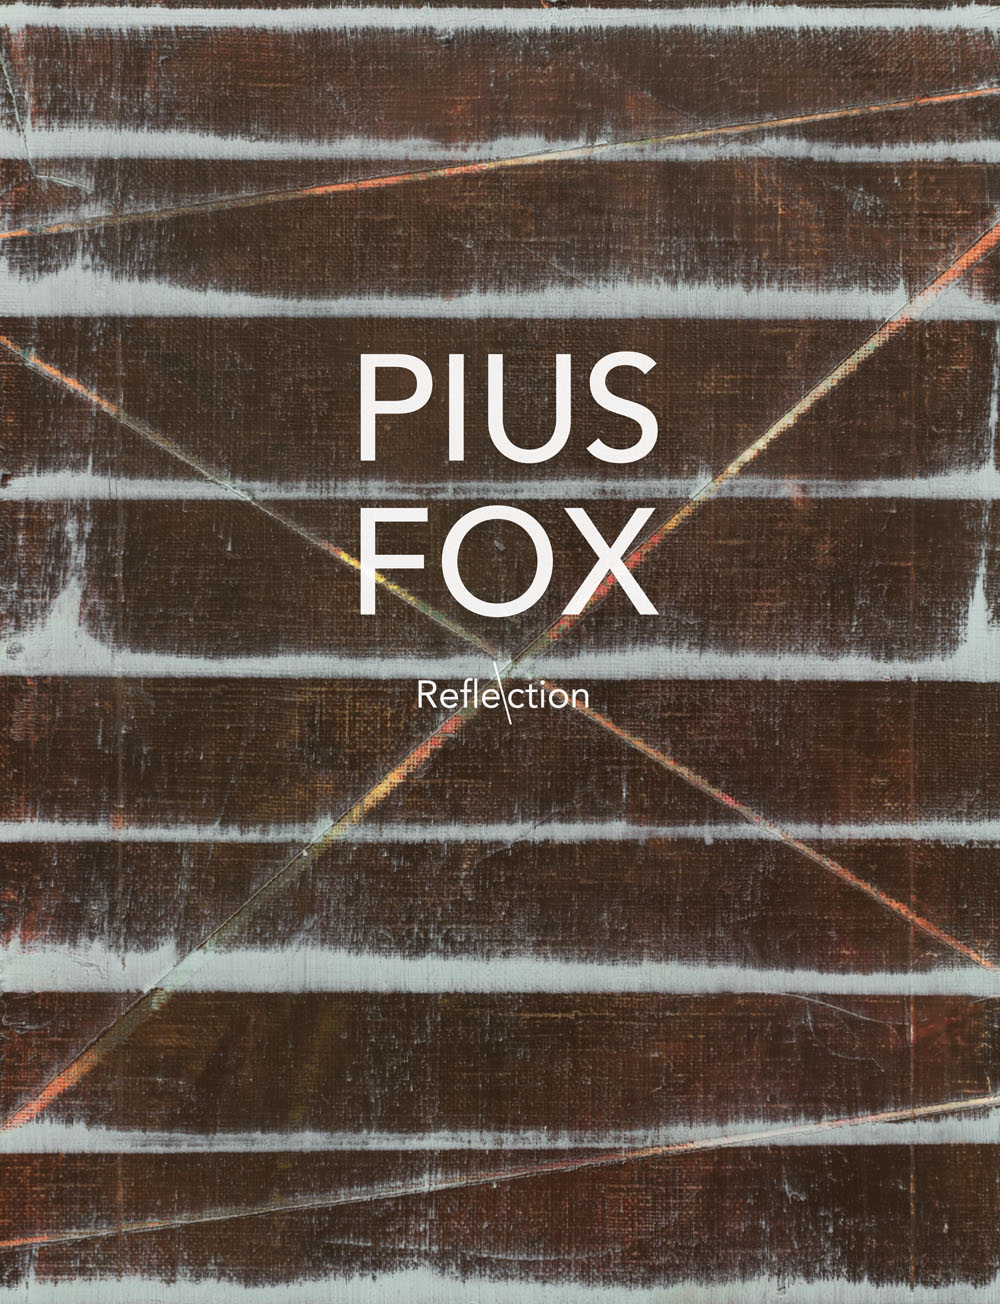 Patrick-heide-pius-fox-catalogue-2013